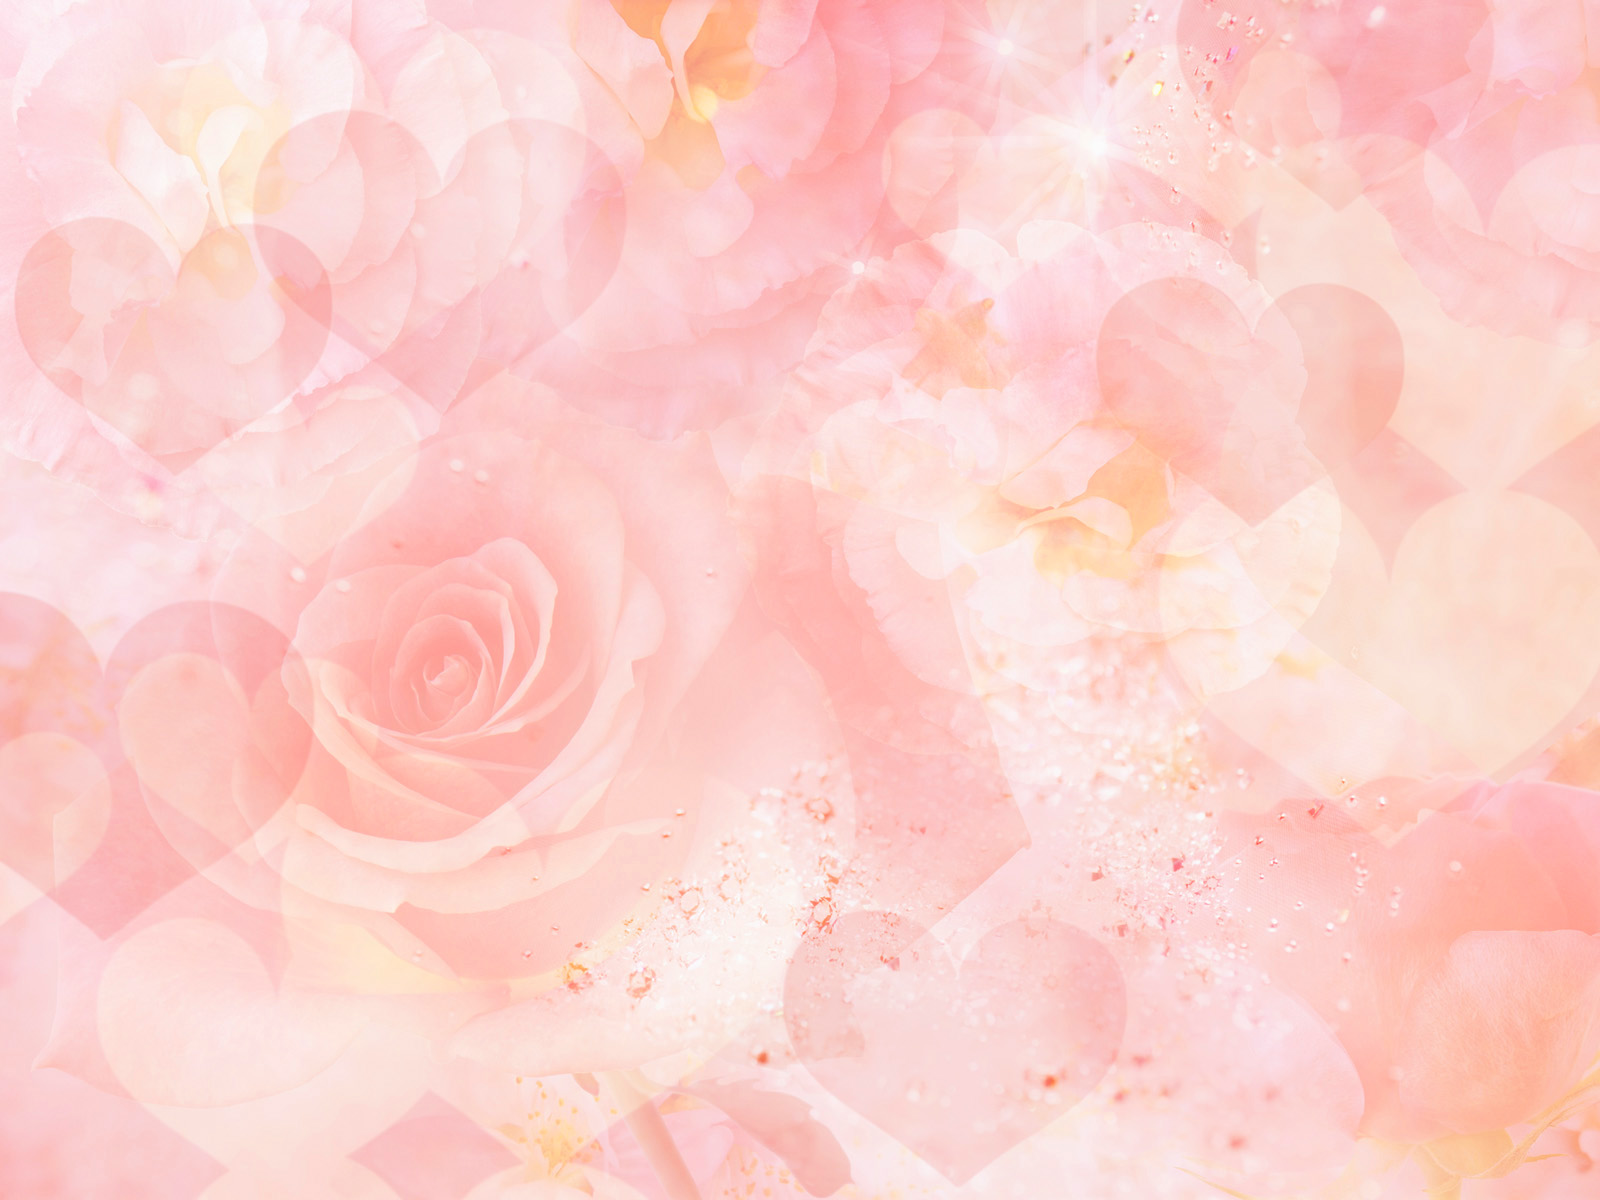 Full HD 1080p Pink Wallpapers